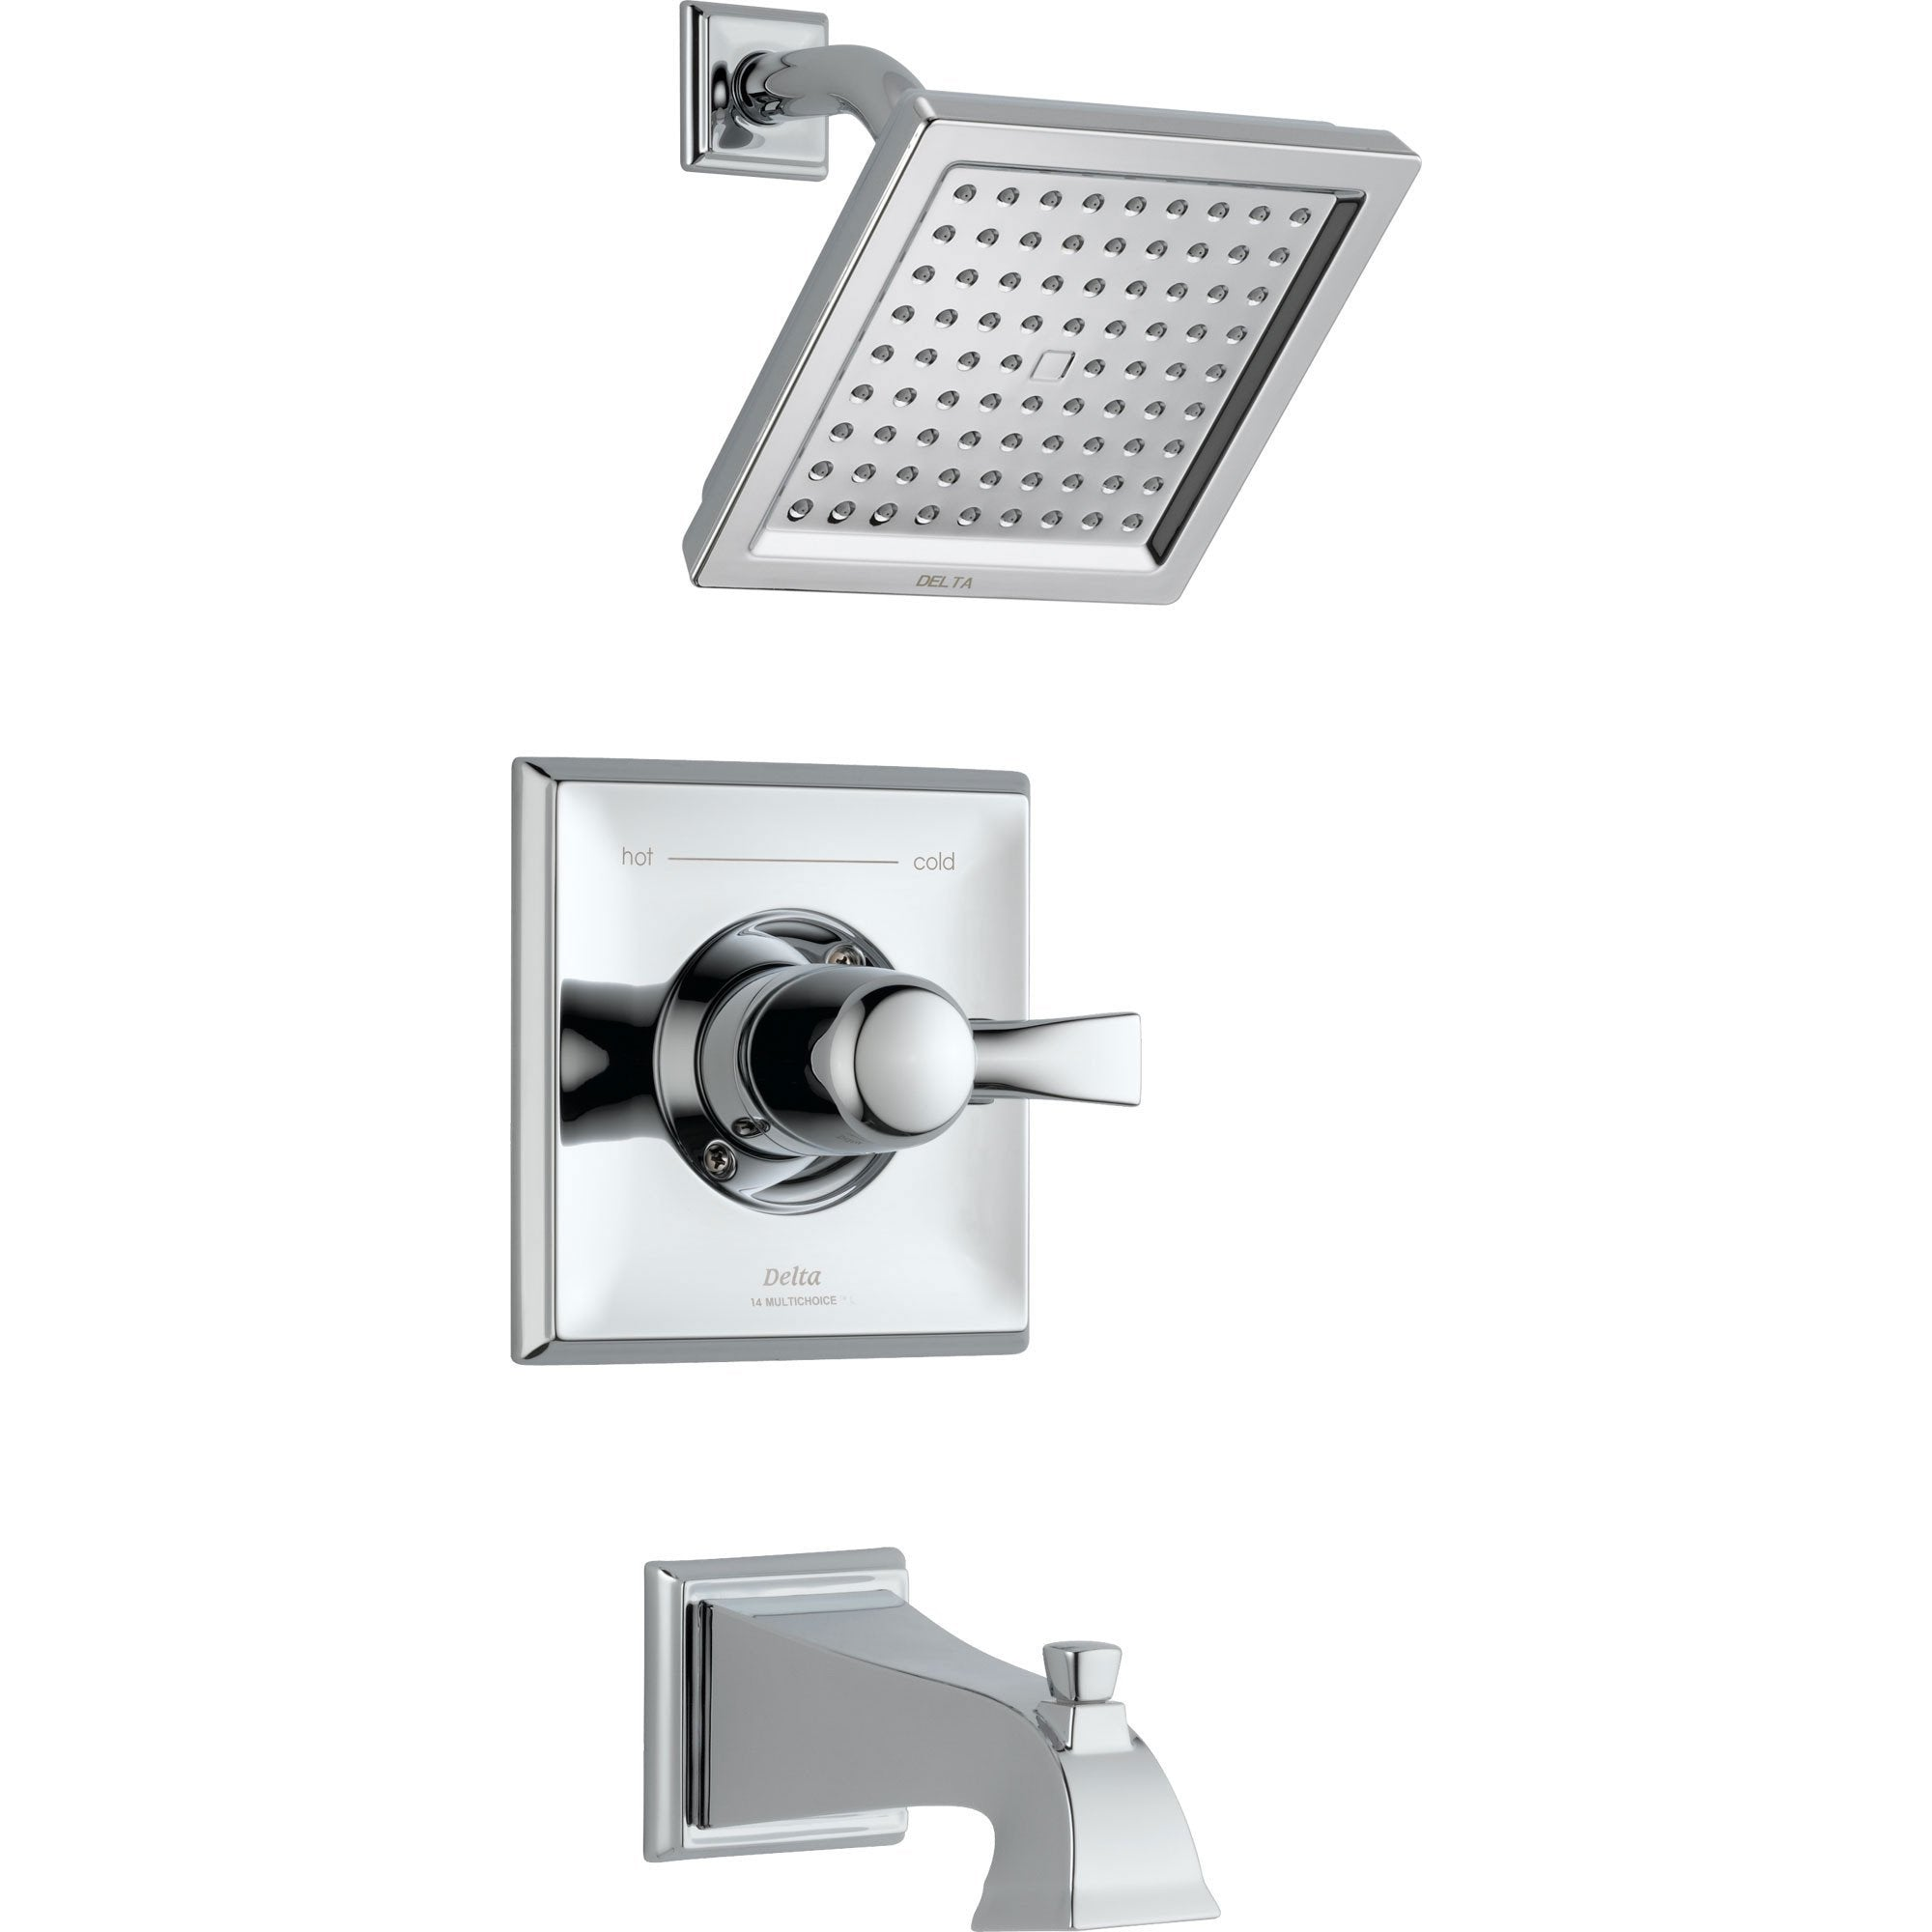 Delta Dryden Modern Square Chrome Tub and Shower Faucet Includes Valve D312V